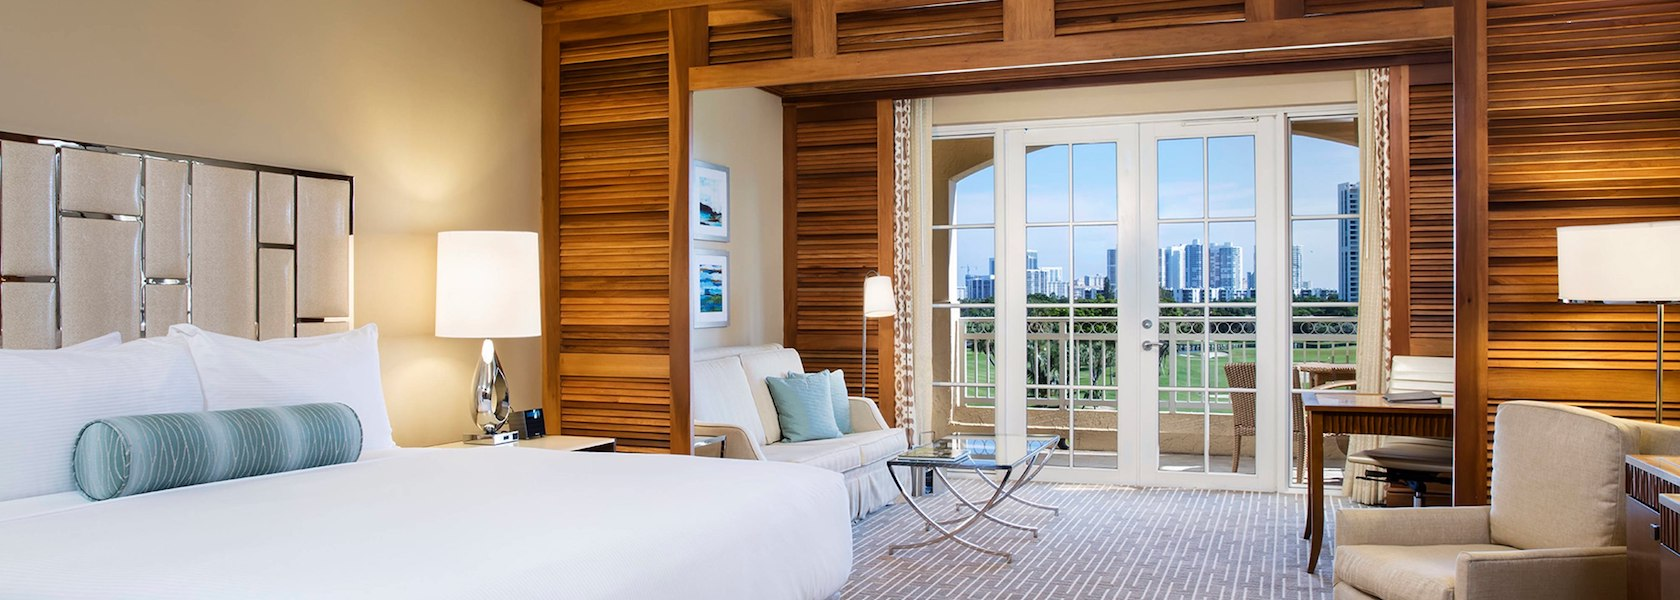 Junior King Suite Golf View room at JW Marriott Turnberry Isle Miami